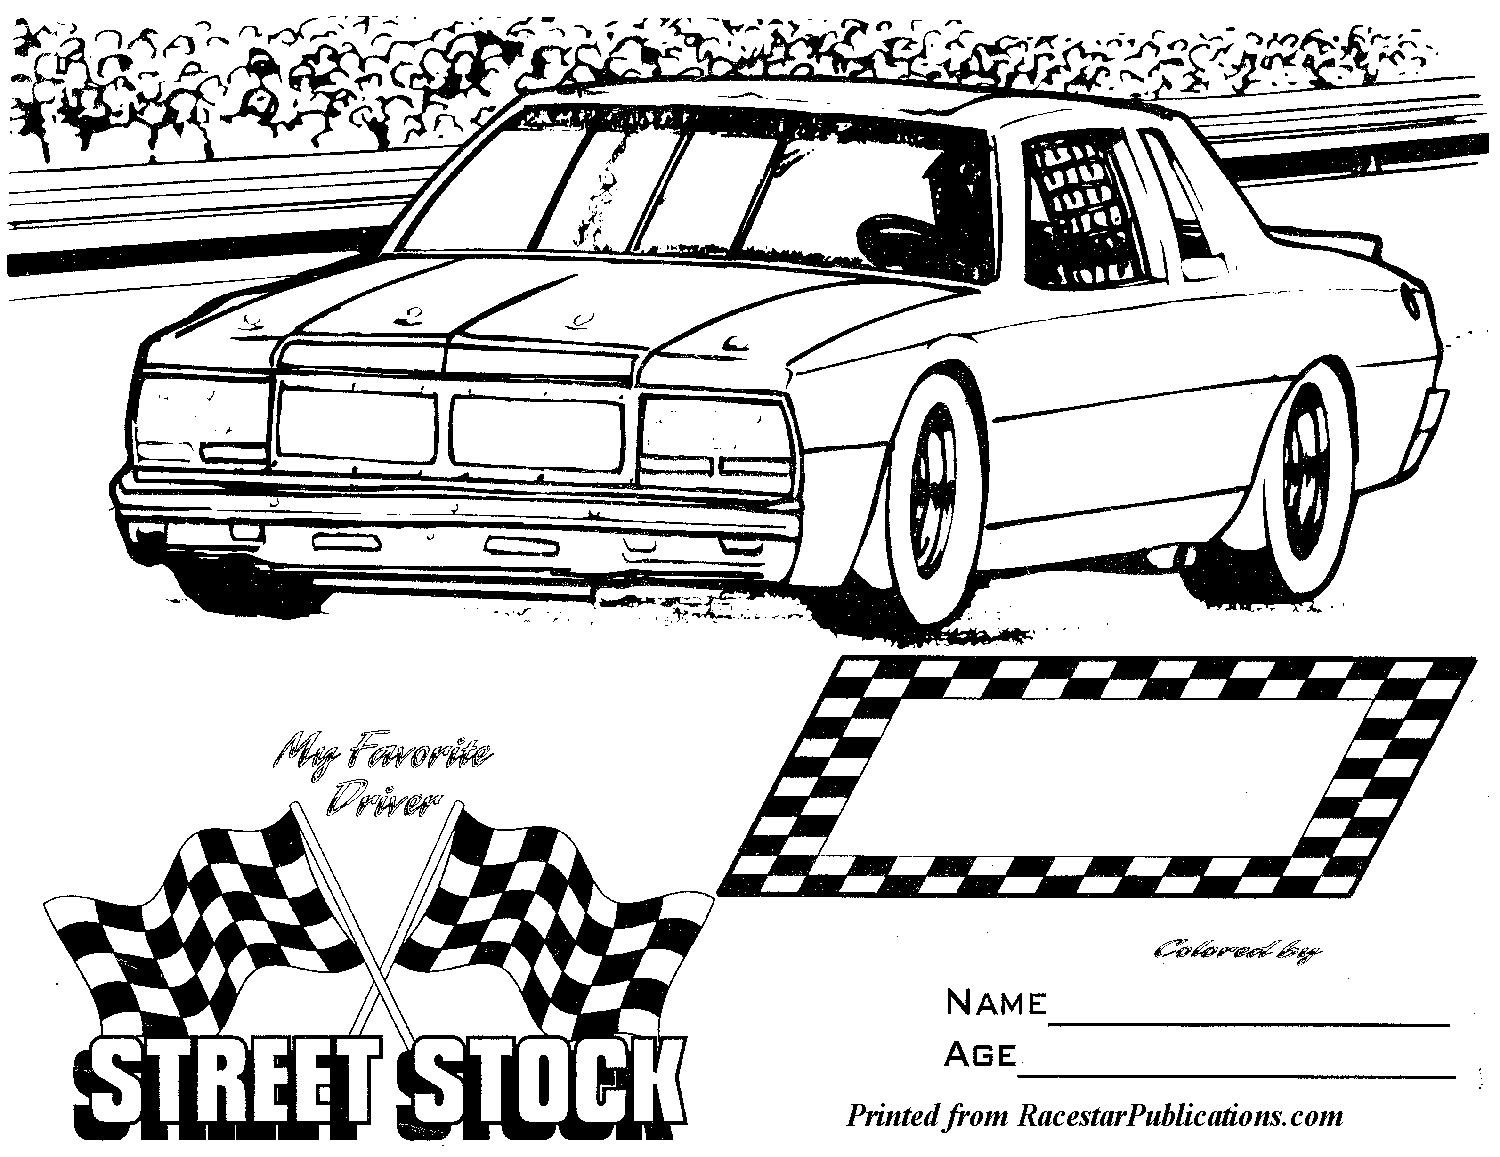 Street Stock Template Pro Mod Drag Car Coloring Pages Coloring Pages